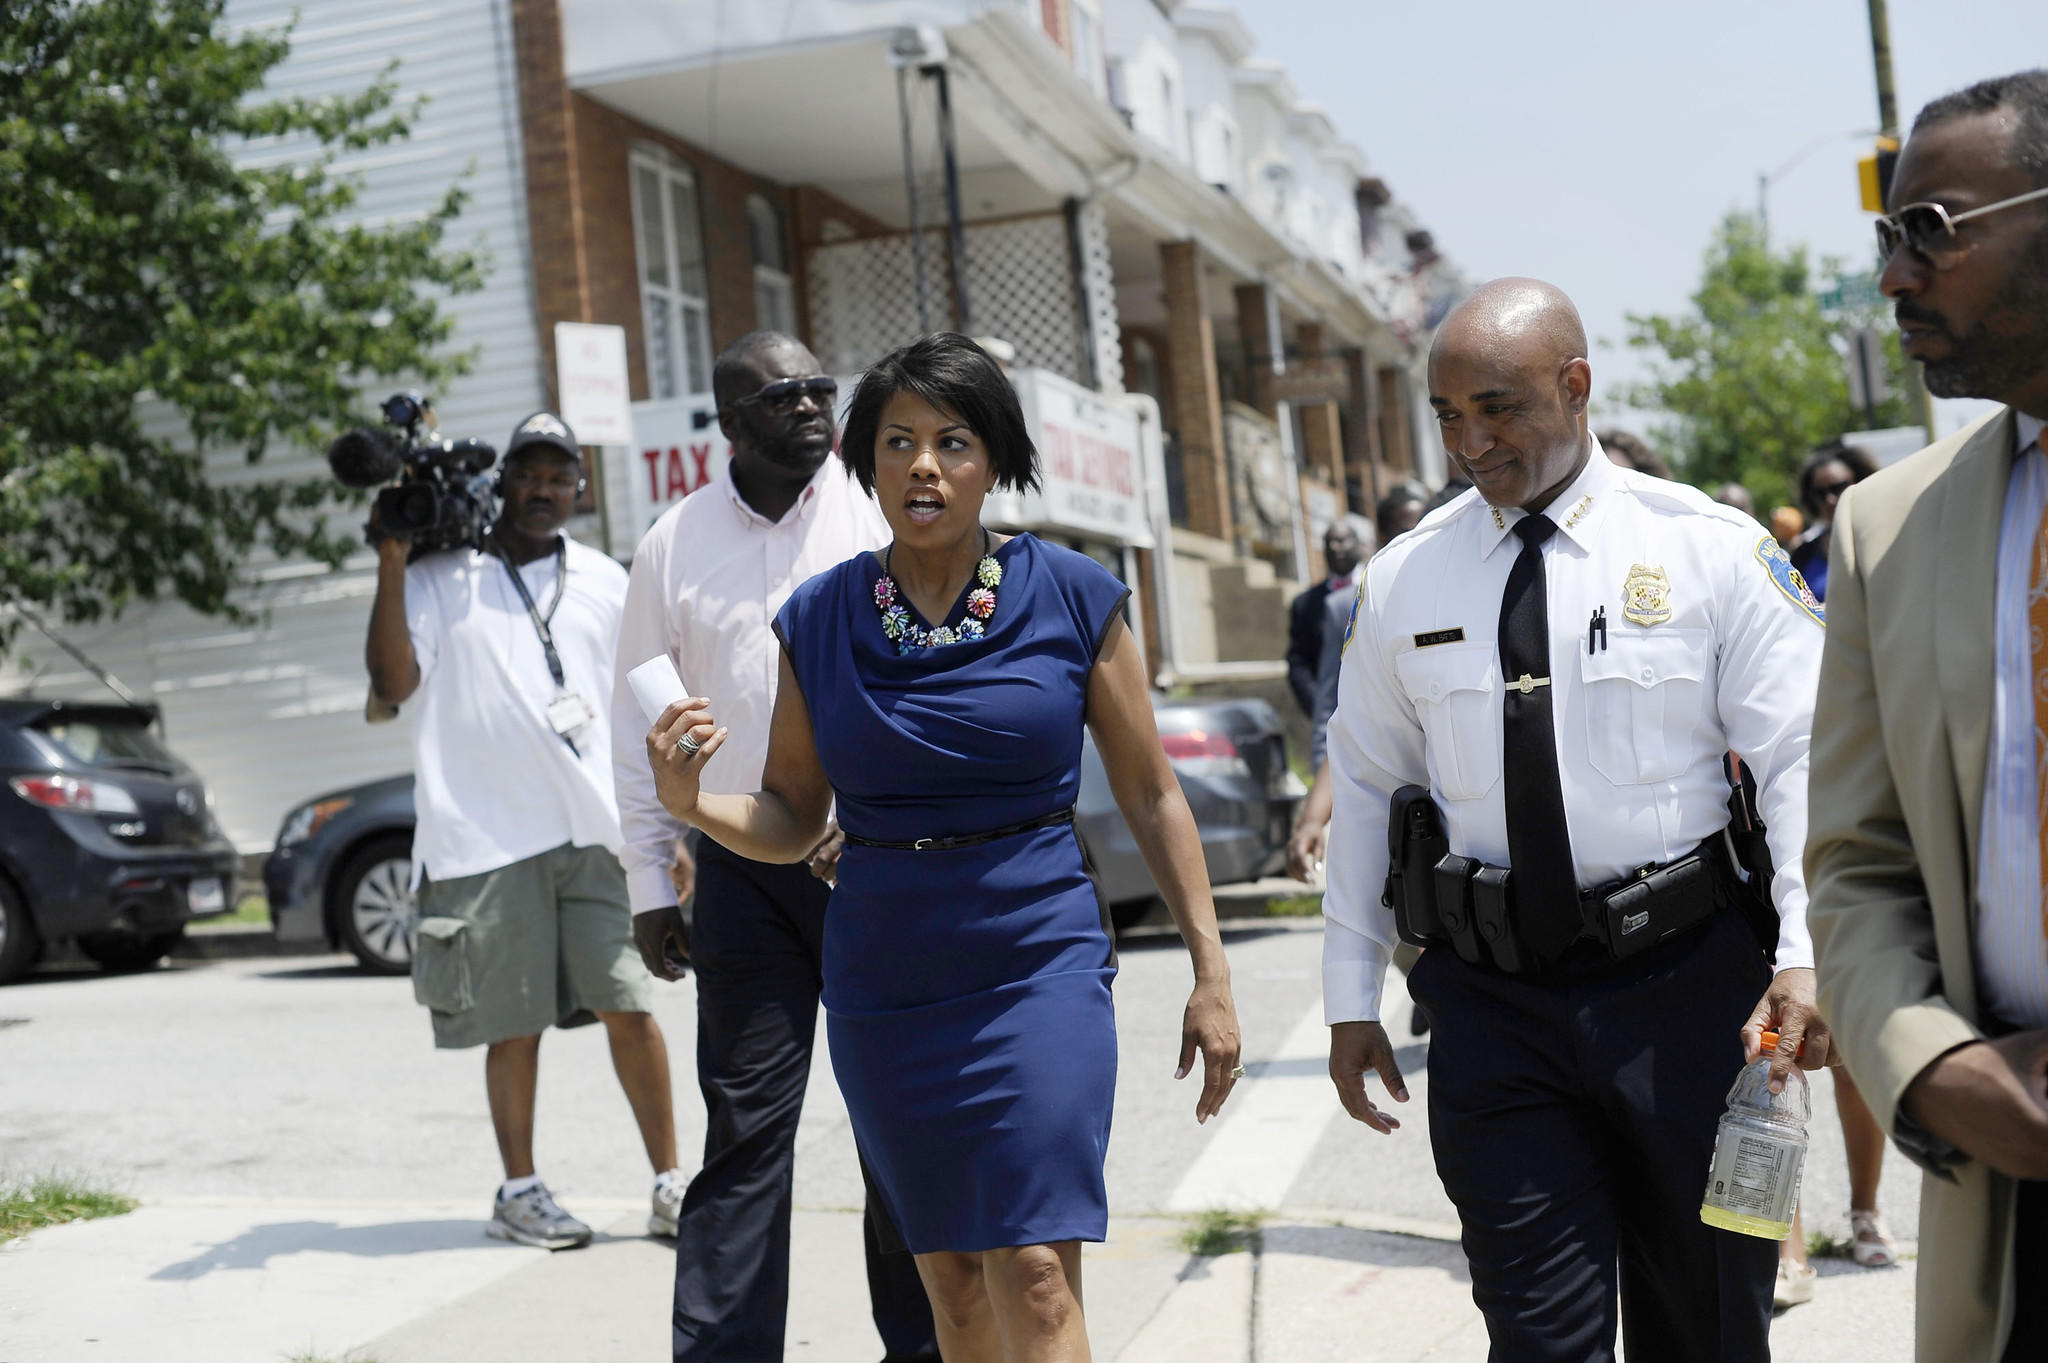 From left, Mayor Stephanie Rawlings-Blake and Baltimore Police Commissioner Anthony Batts walk on Belair Road Tuesday morning after a press conference about public safety initiatives and the recent reductions in violent crime.